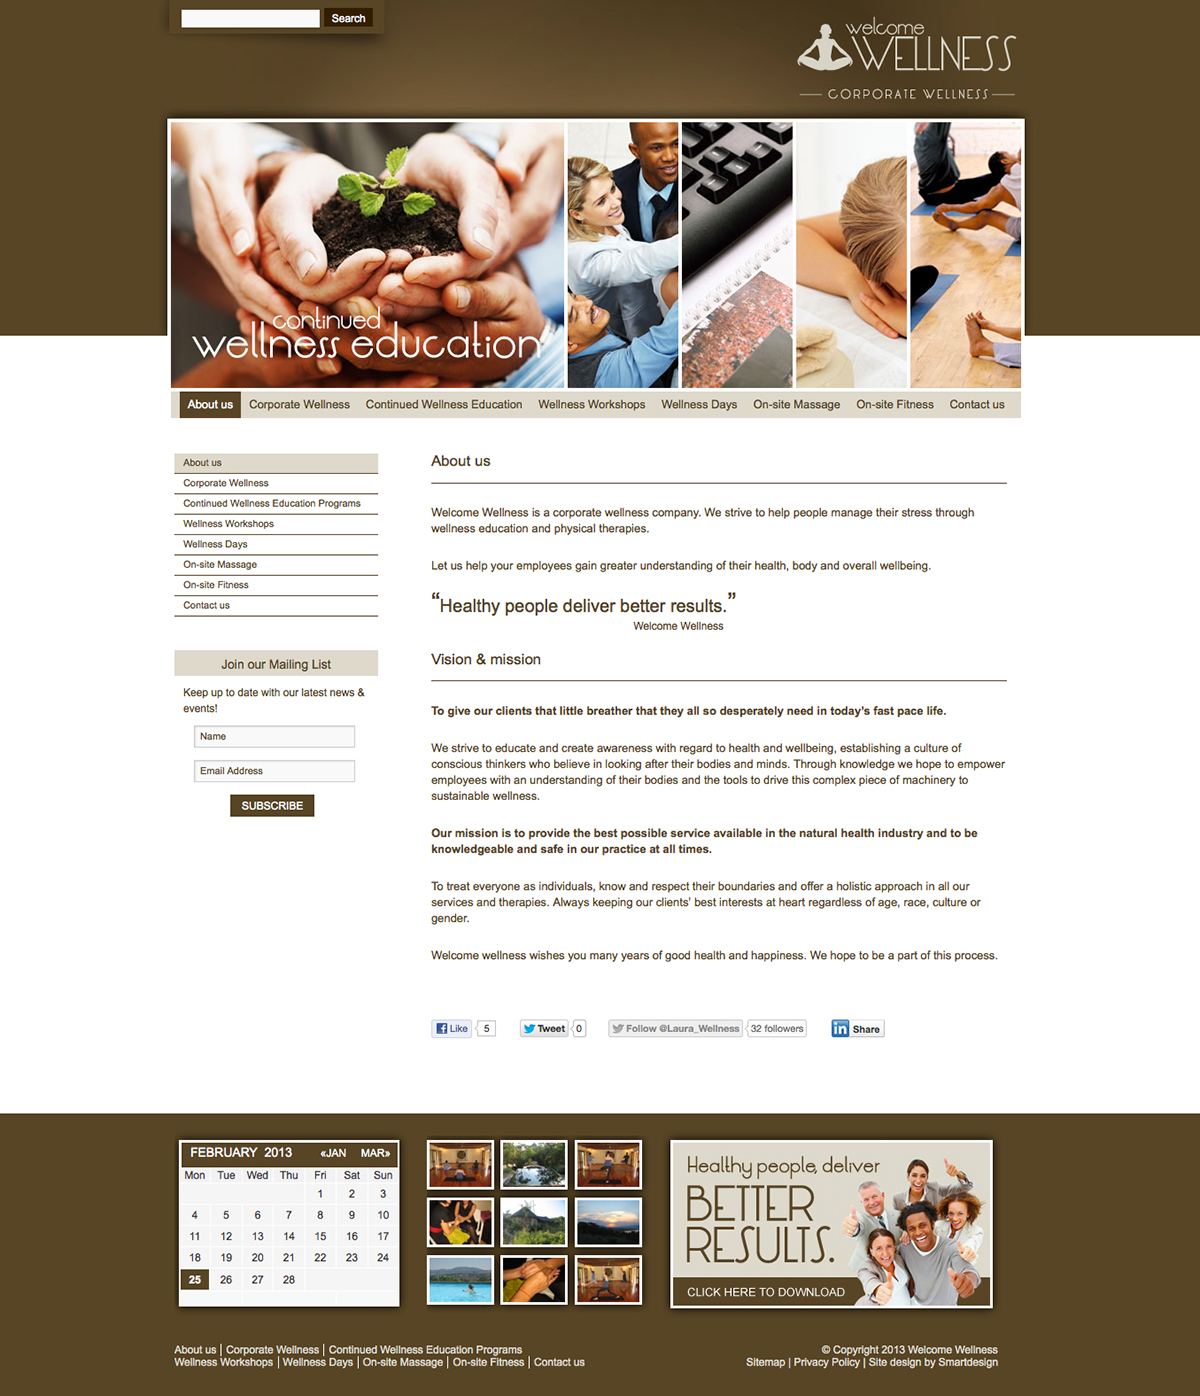 Design and Development of the Welcome Wellness Website